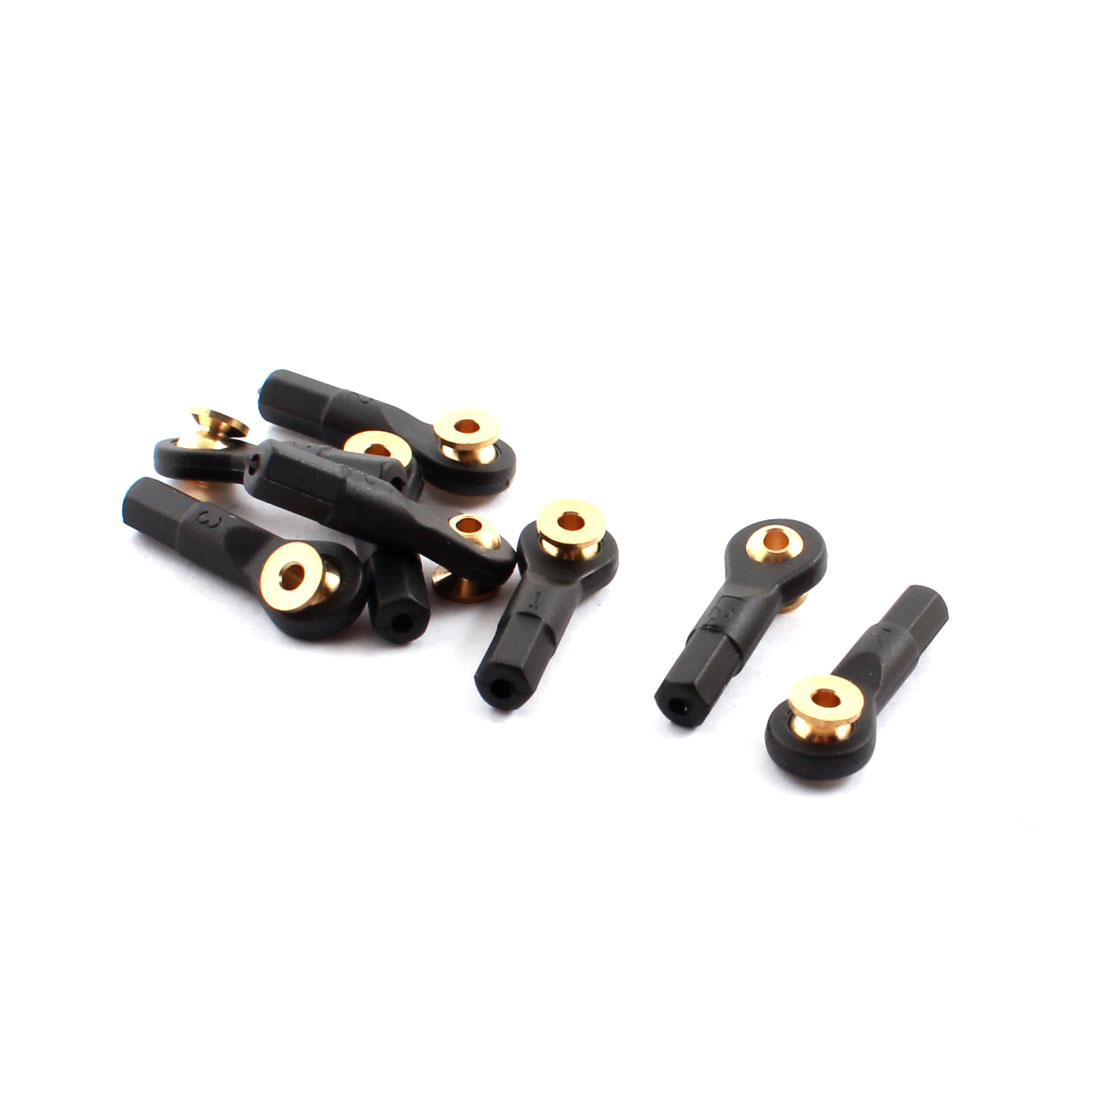 8Pcs RC Car Spare Parts Tie Rod Ends Brass Ball Link 2x2x24mm